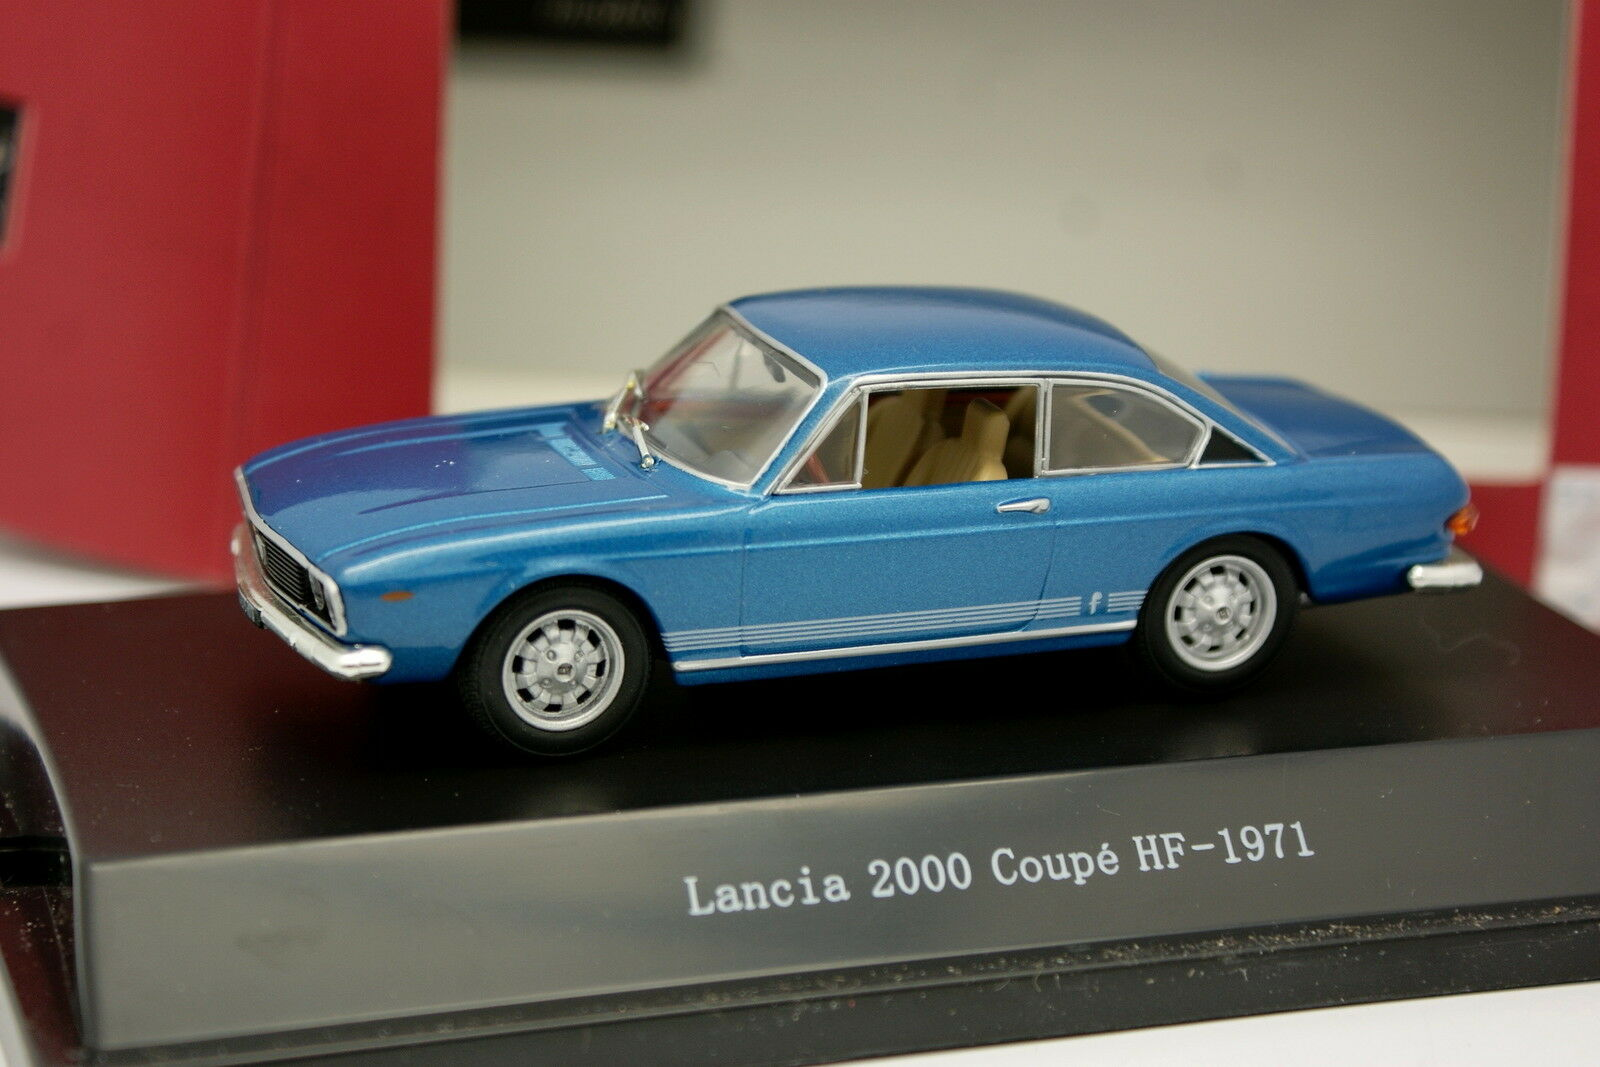 Starline 1 43 - Lancia 2000 Coupe HF bluee 1971